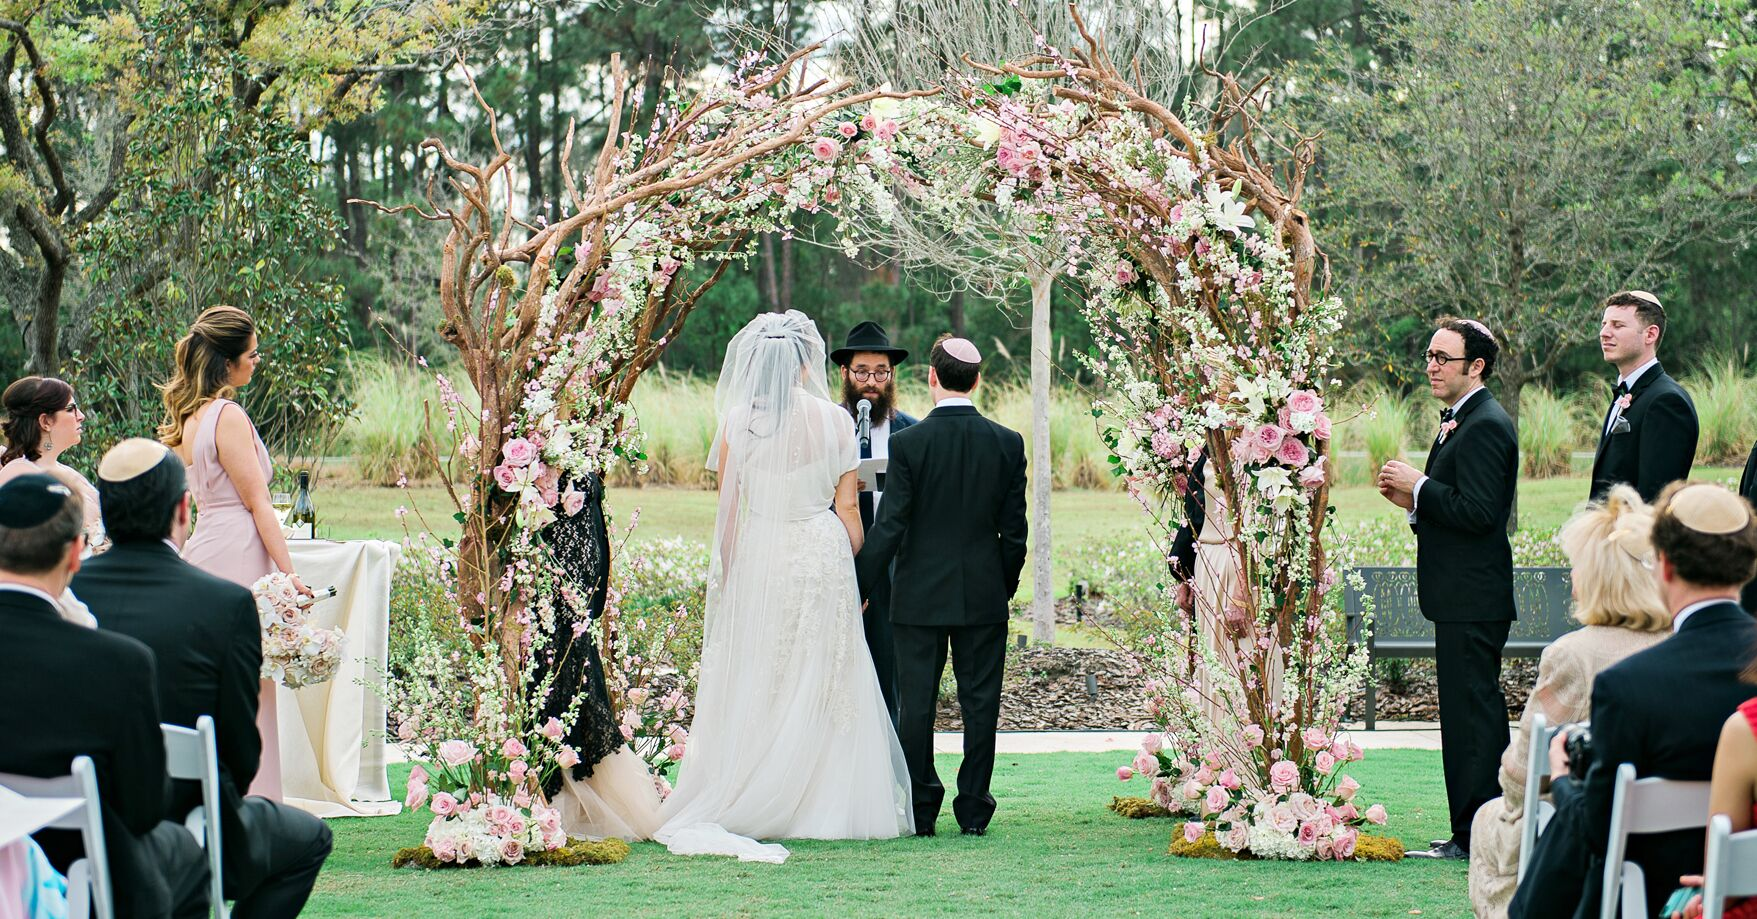 It is just a graphic of Jewish Wedding Ceremony: Jewish Processionals, Recessionals & Seating